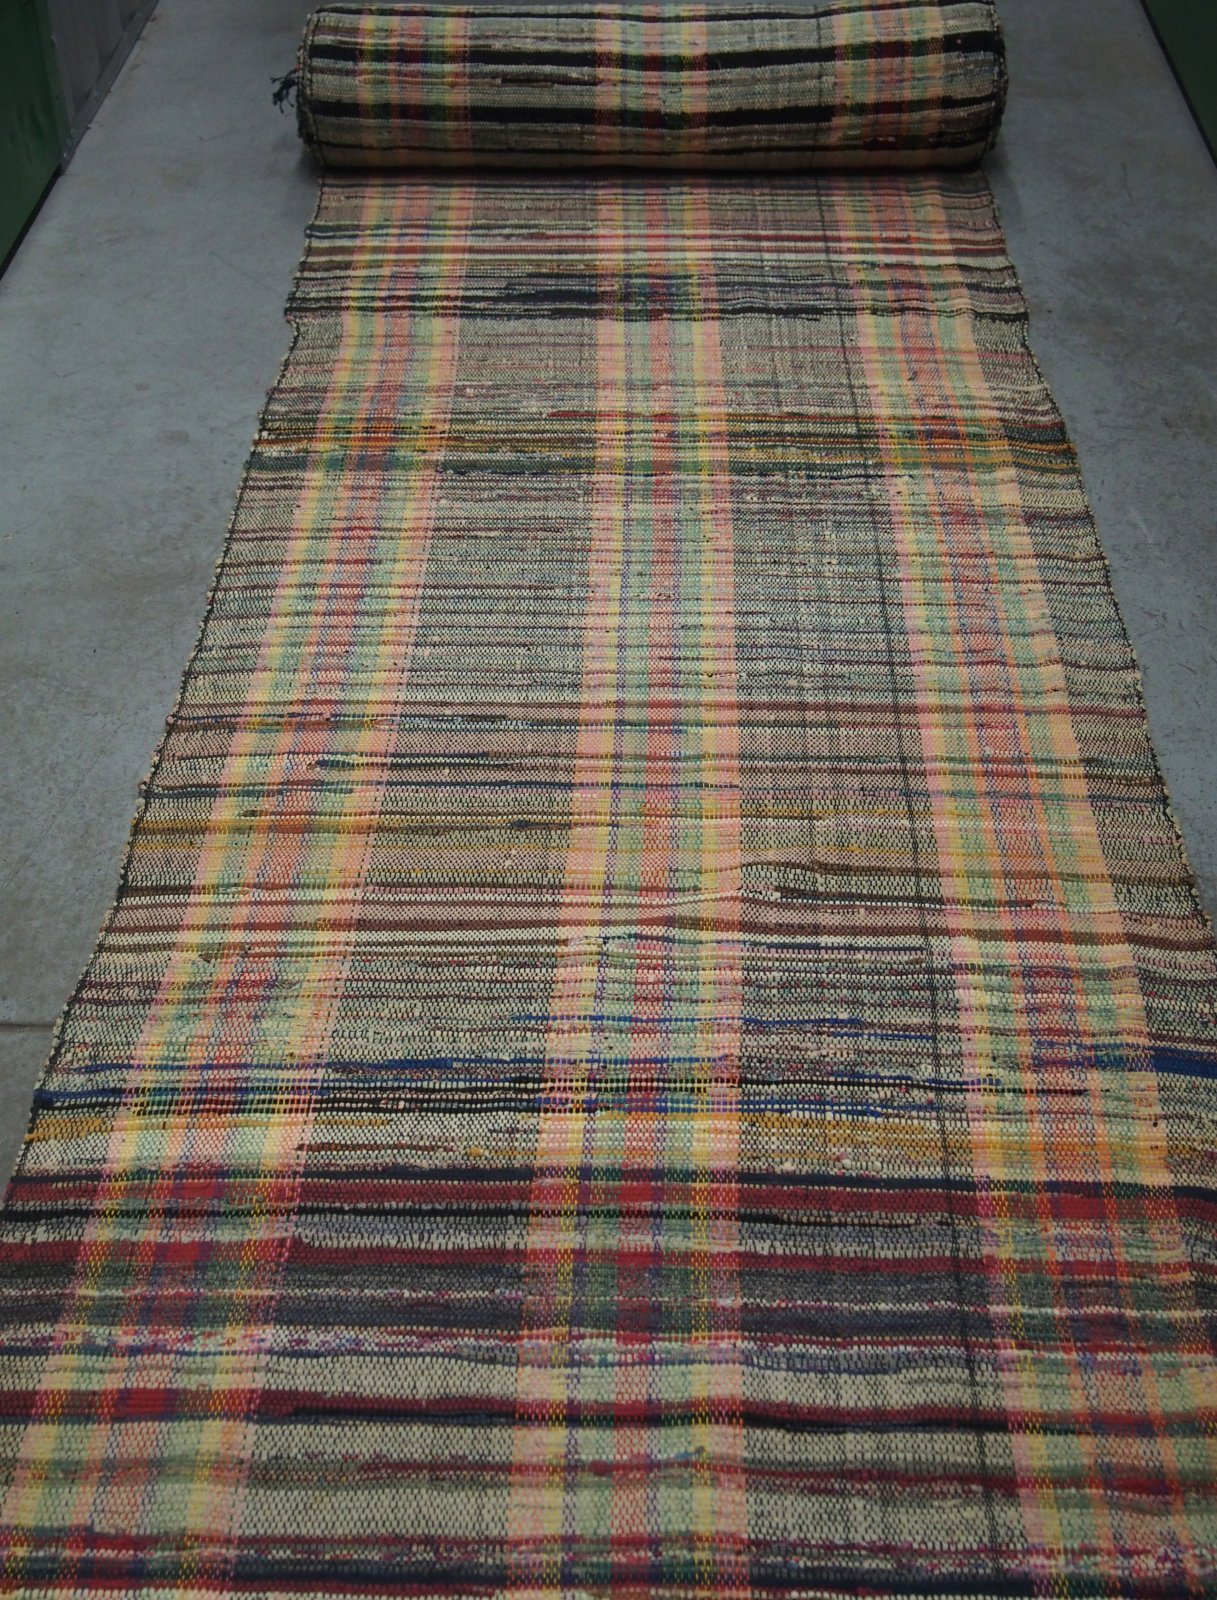 AMISH ANTIQUE RAG CARPET  available in multiple rolls, room size. INQUIRE